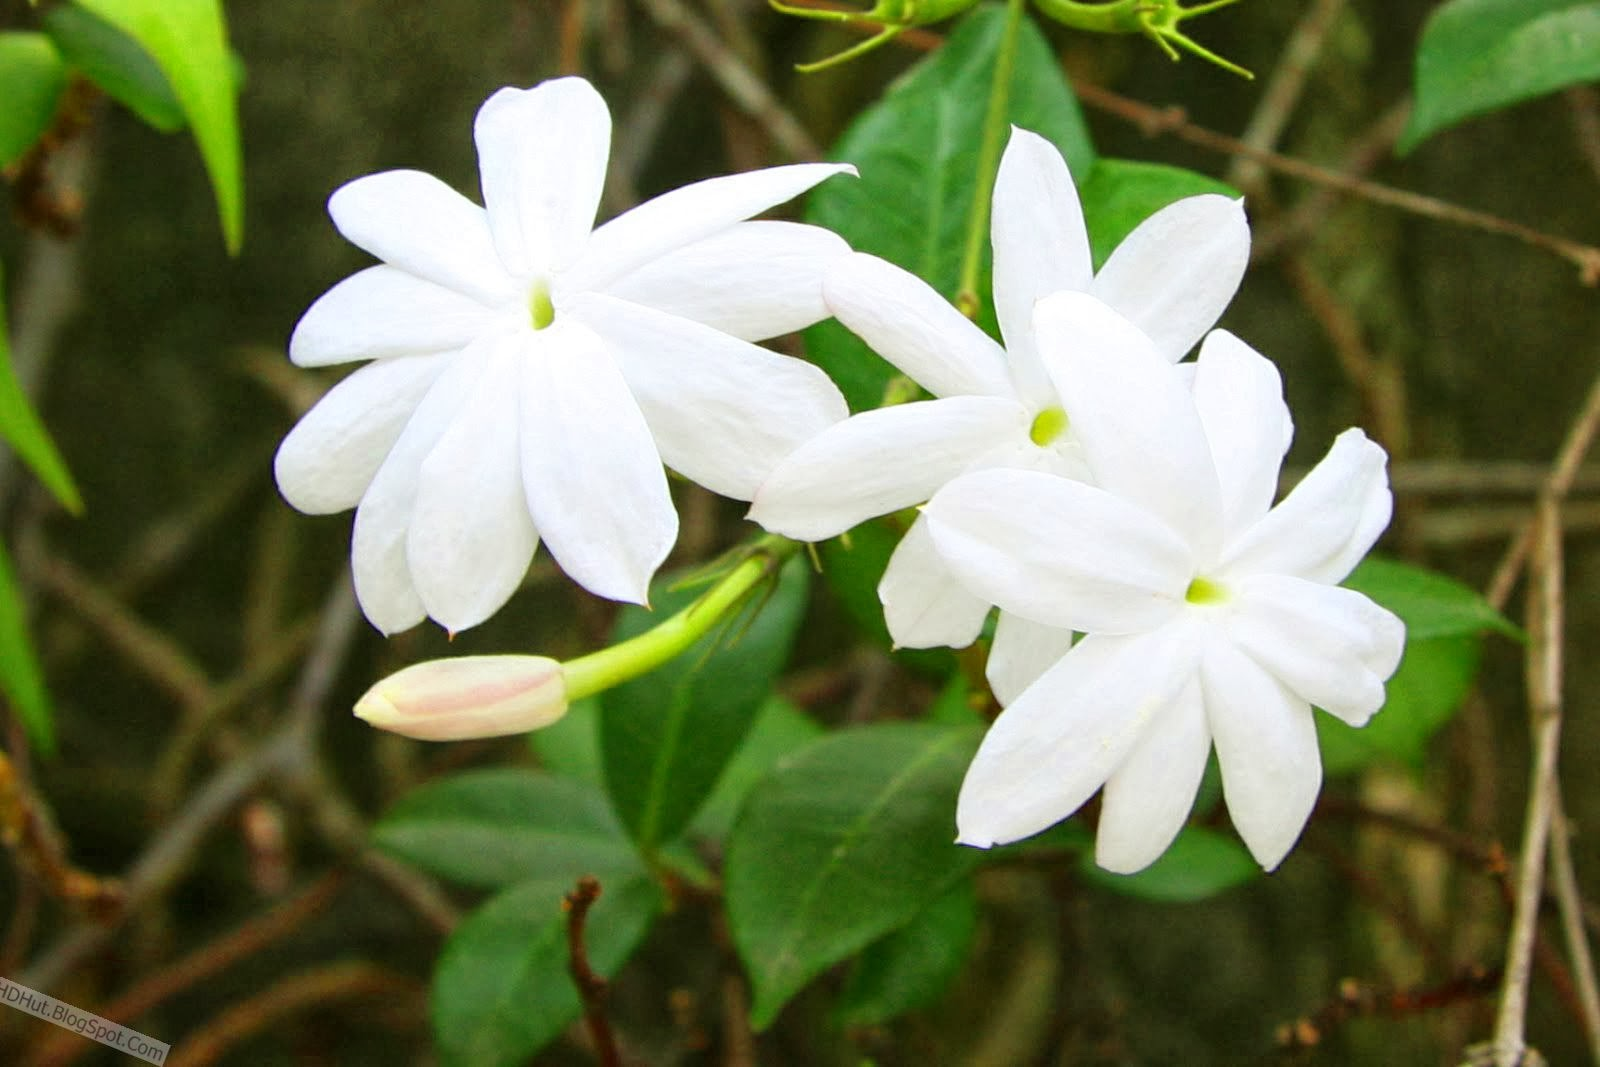 Top 20 jasmine flower wallpapers in hd they are usually very fragrant the fruits of jasmines are berries that turn black when ripe here we have some of this type wallpapers in hd izmirmasajfo